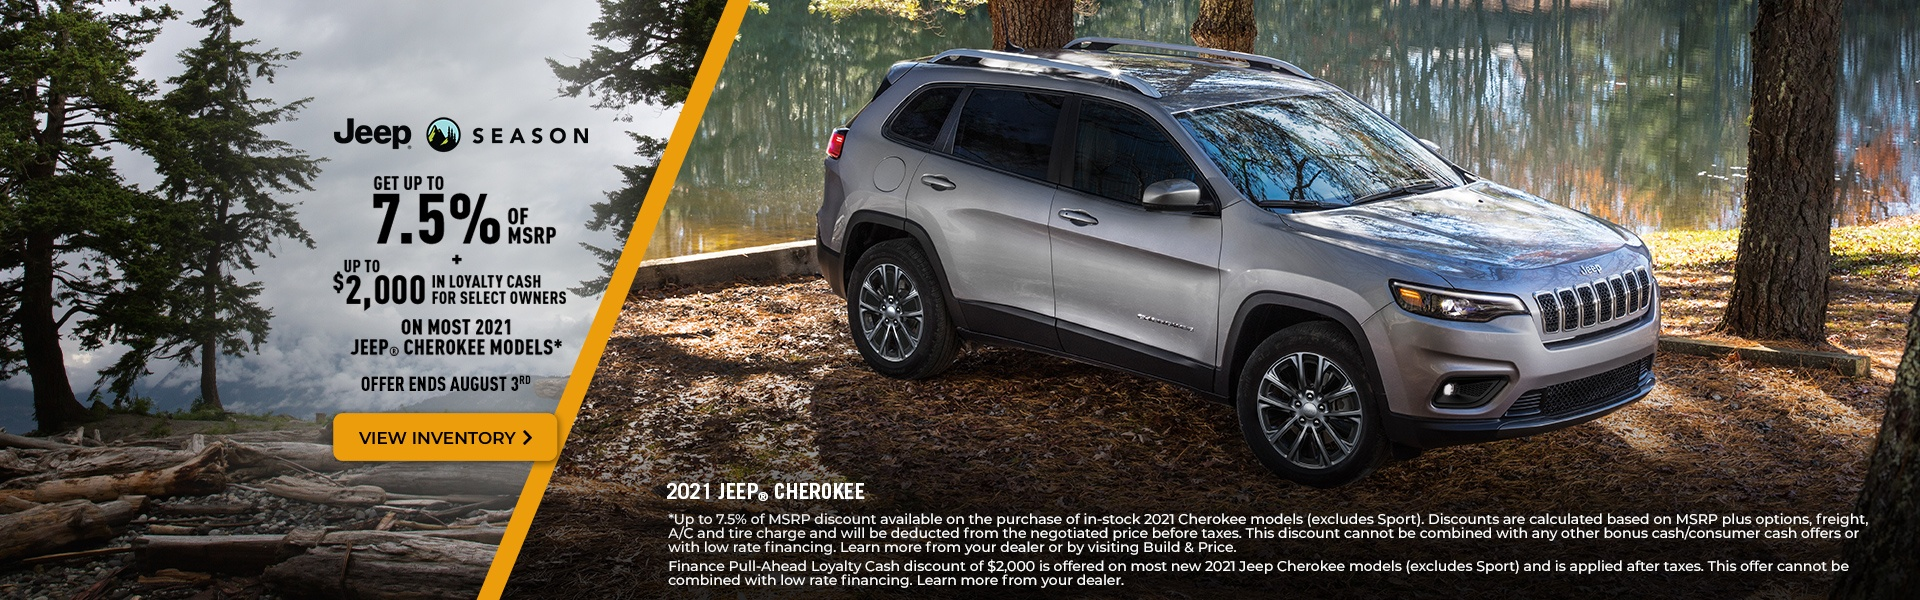 2021 Jeep Cherokee Promotional Banner